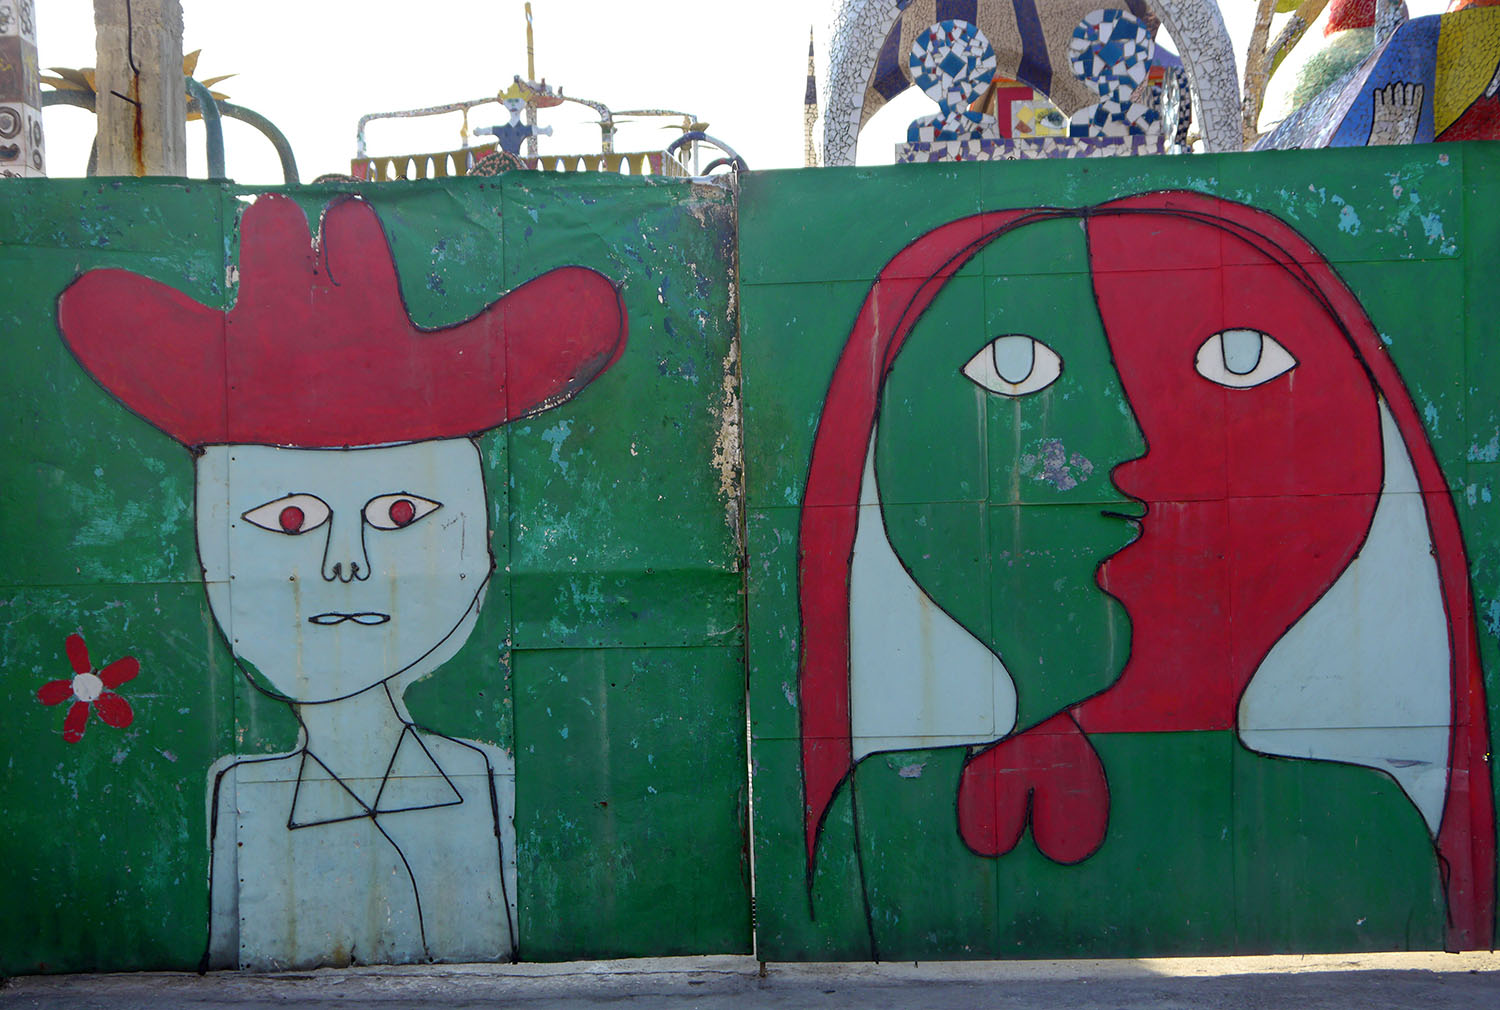 Photographed: Exploring Fusterlandia,<br> a poor neighborhood transformed with art